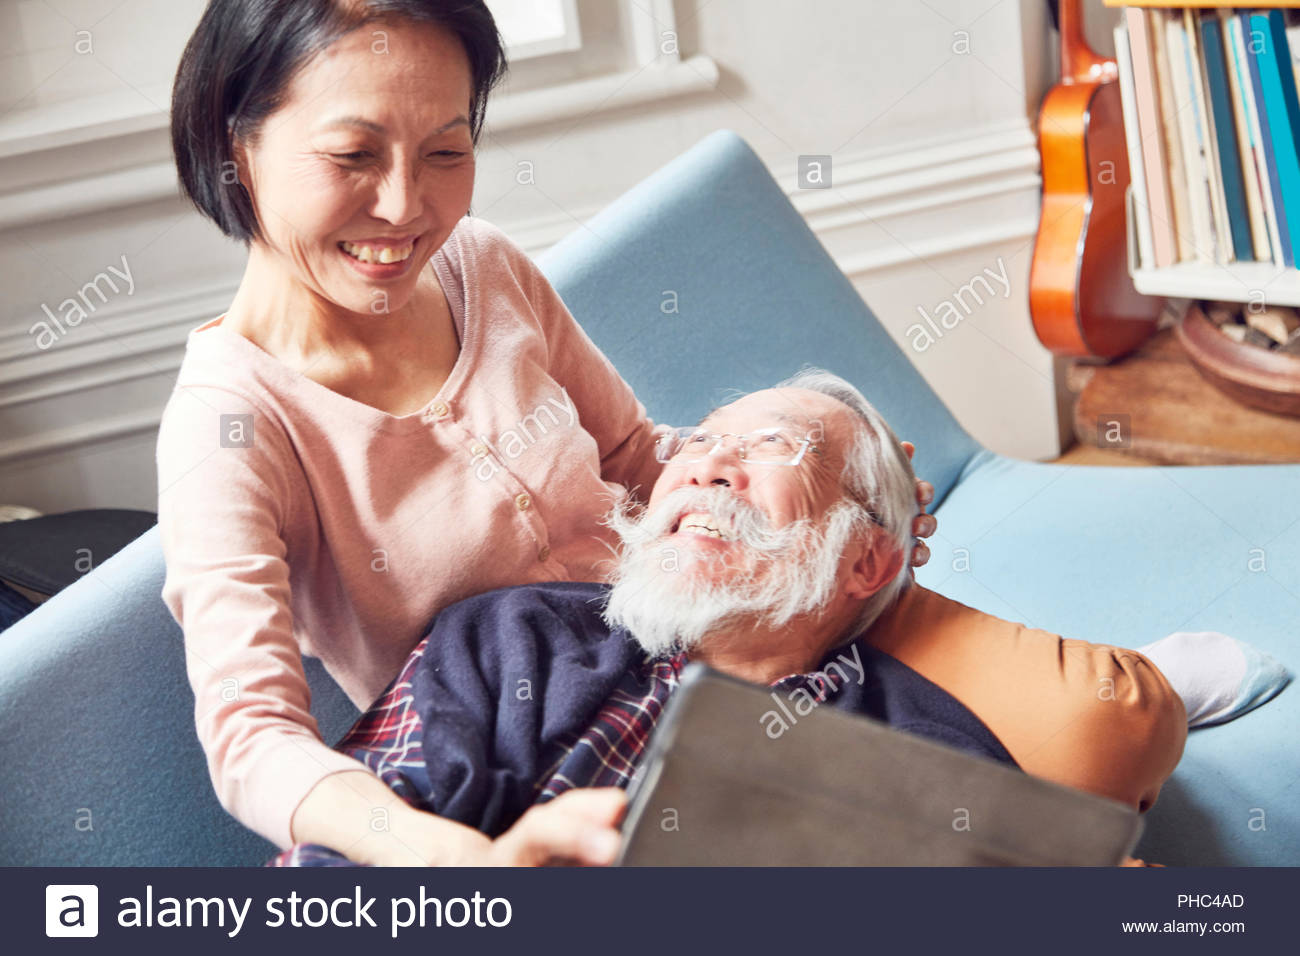 Senior couple using digital tablet together - Stock Image